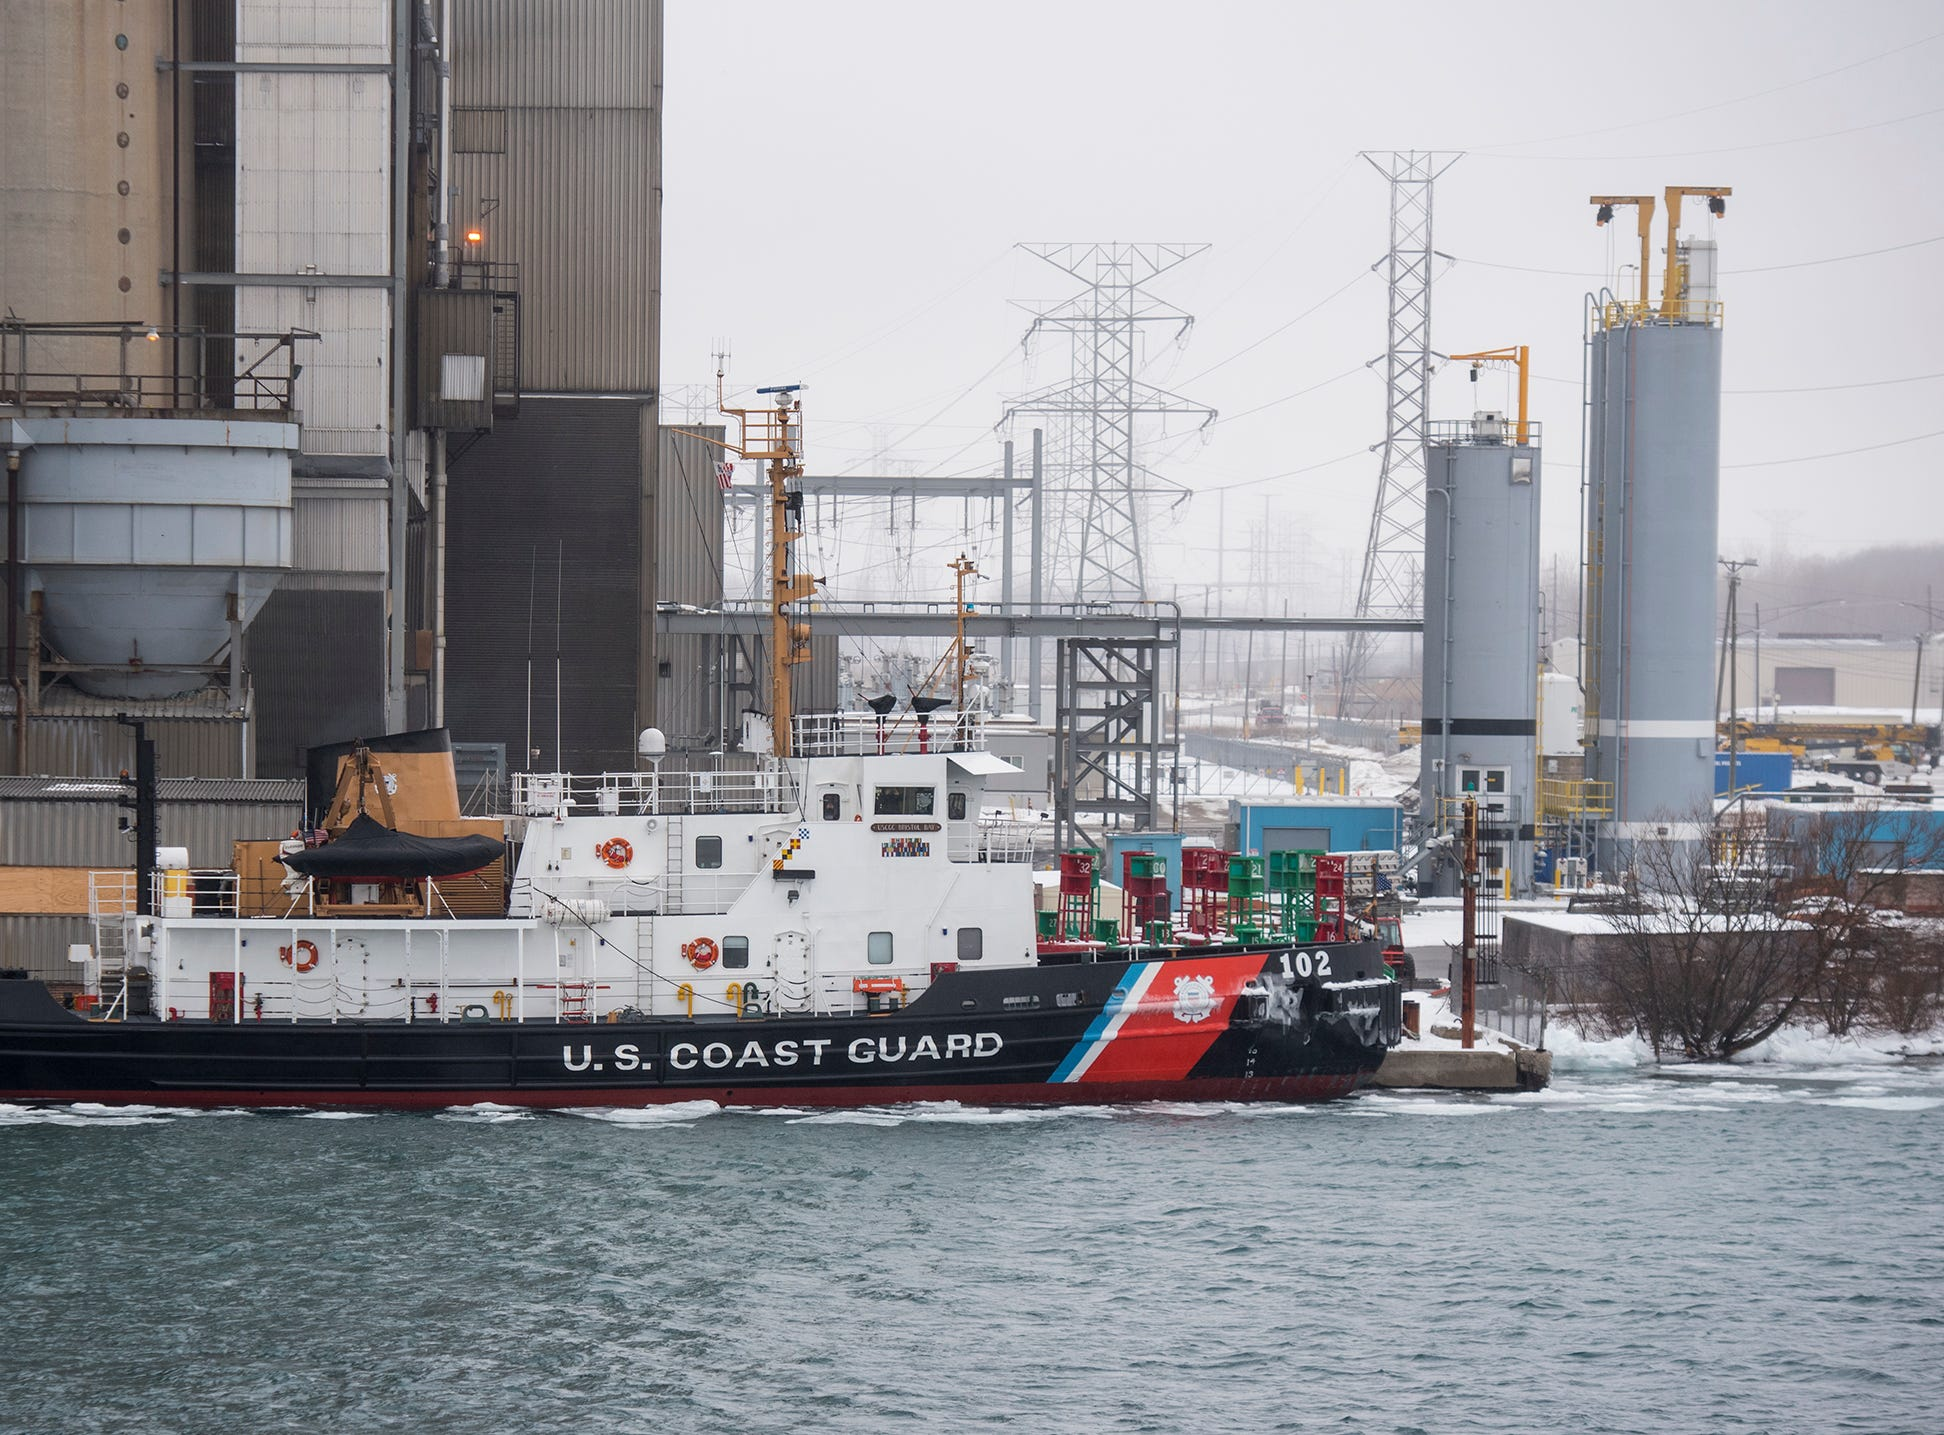 The USCGC Bristol Bay is seen through the fog docked at the DTE Energy plant in East China Wednesday, Feb. 20, 2019, after successfully helping to guide the Algonova through the ice.